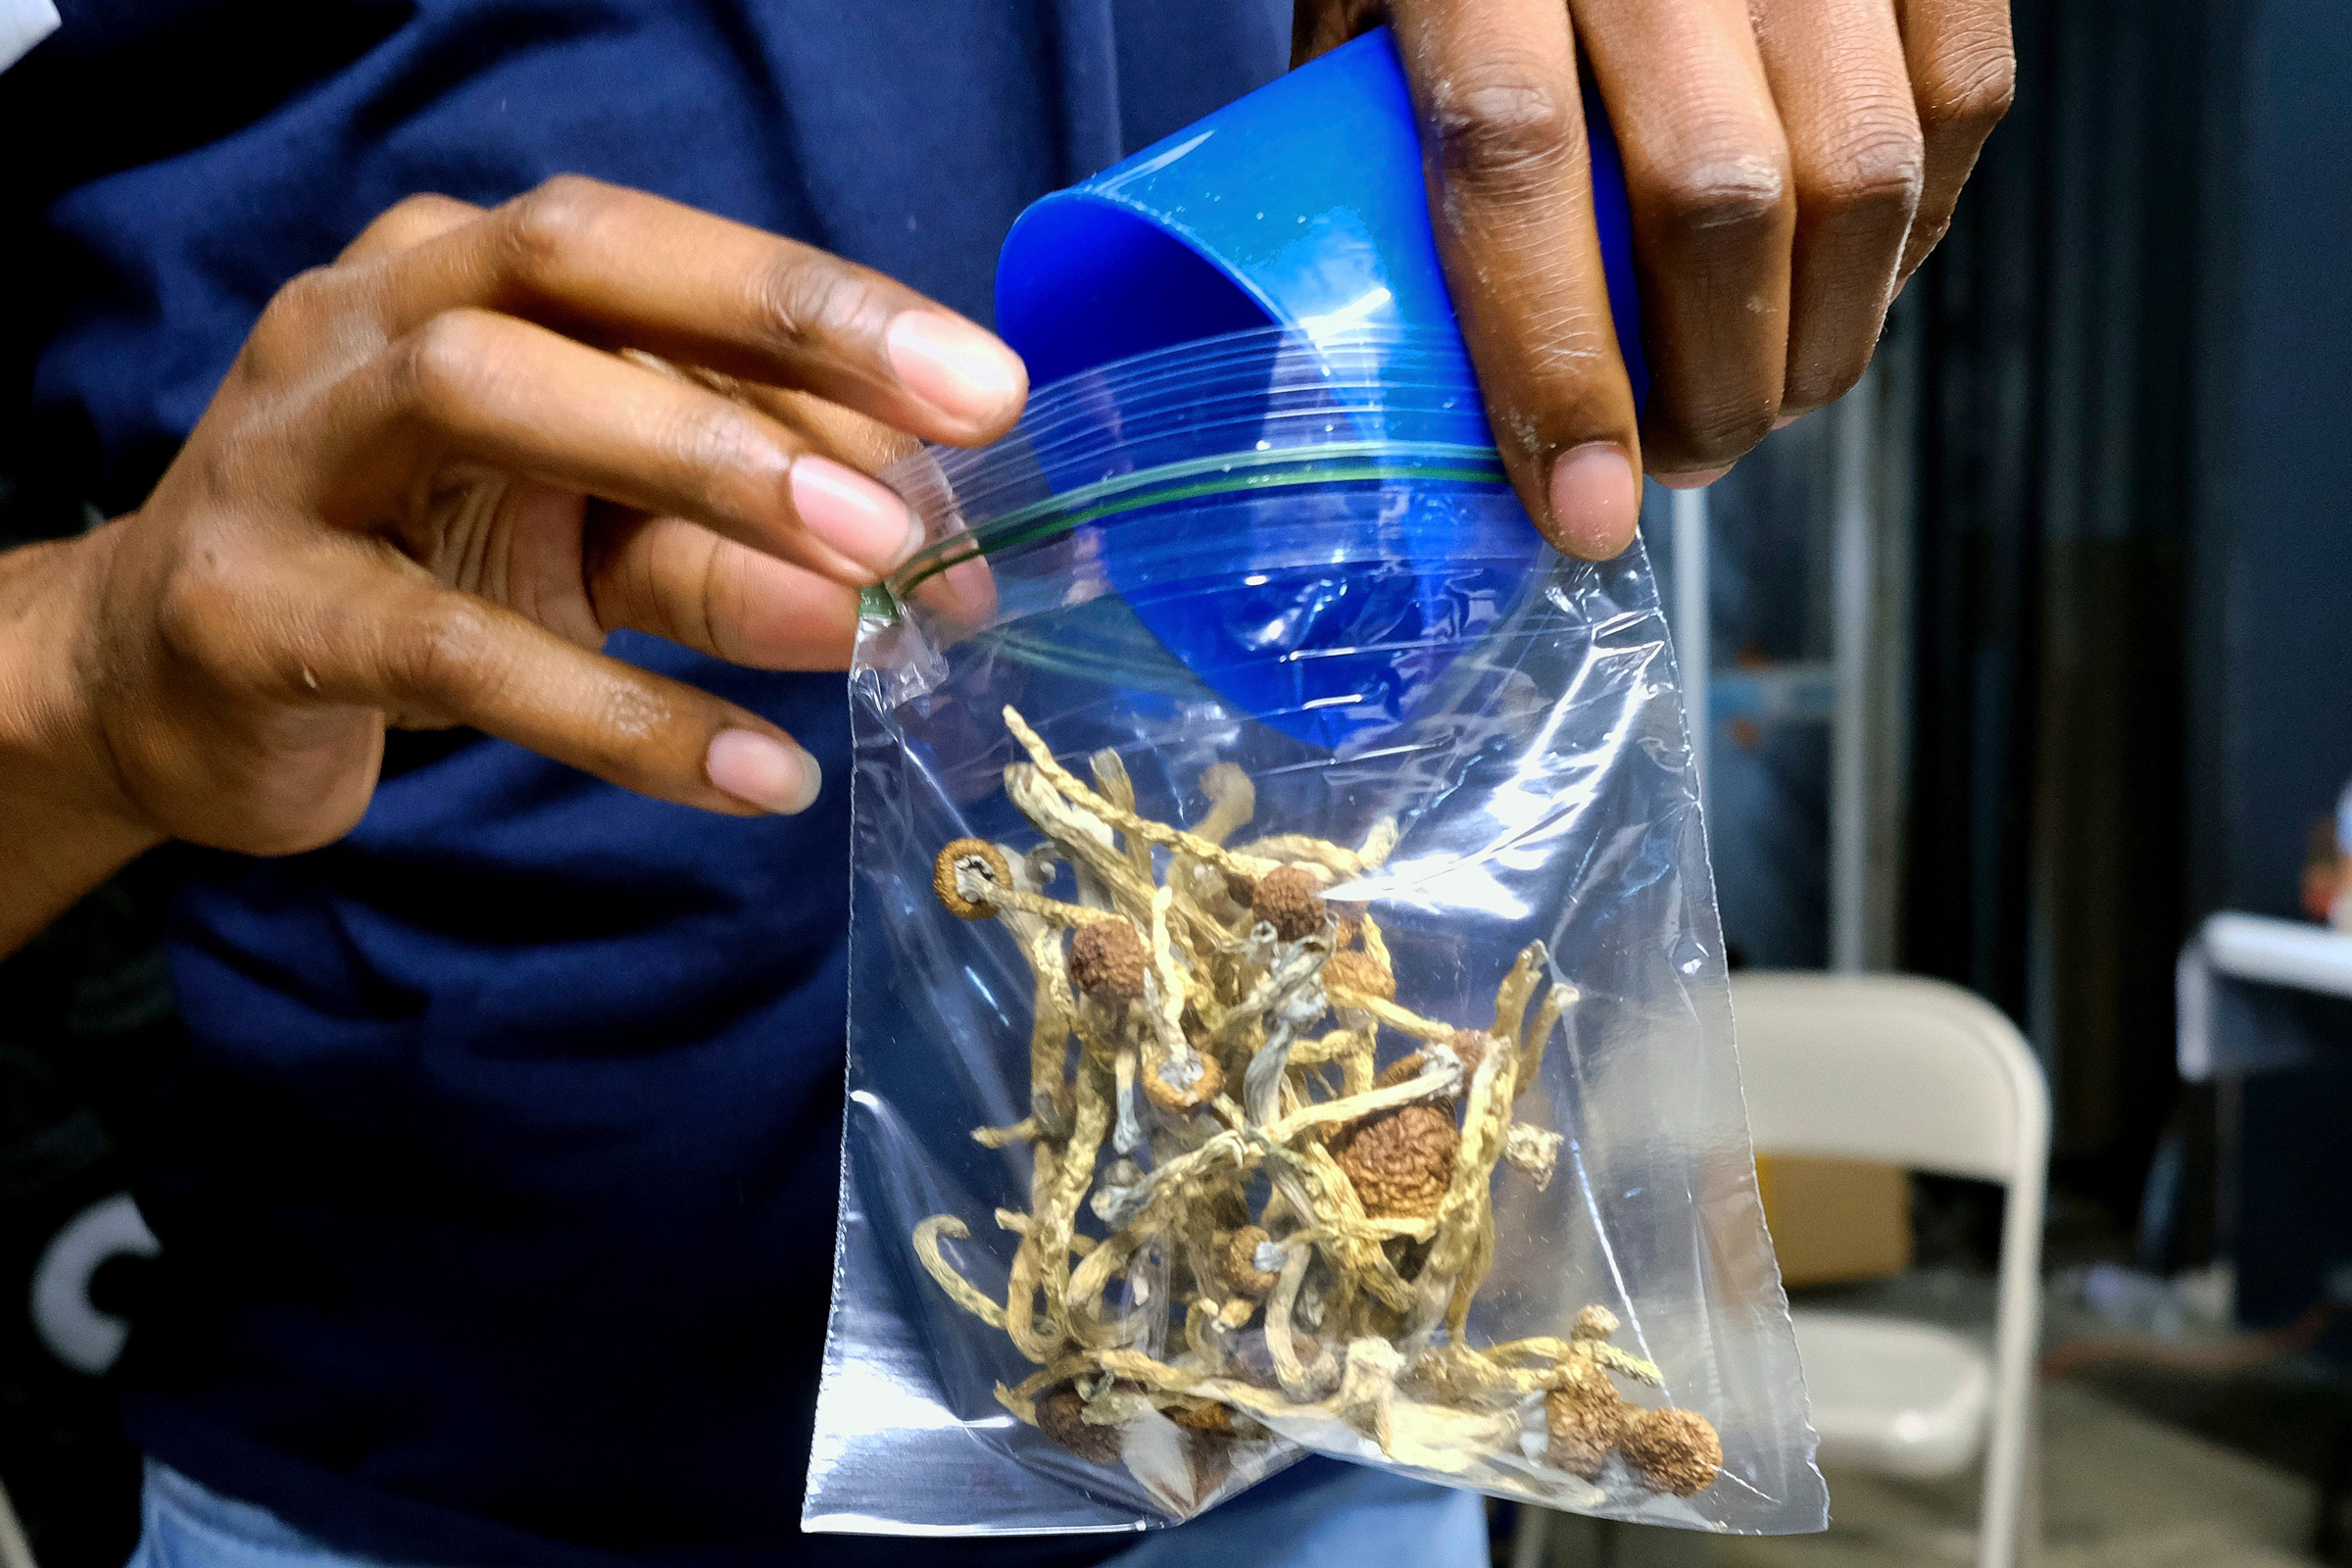 Oakland Becomes Second City to Decriminalize Psychedelic Mushrooms